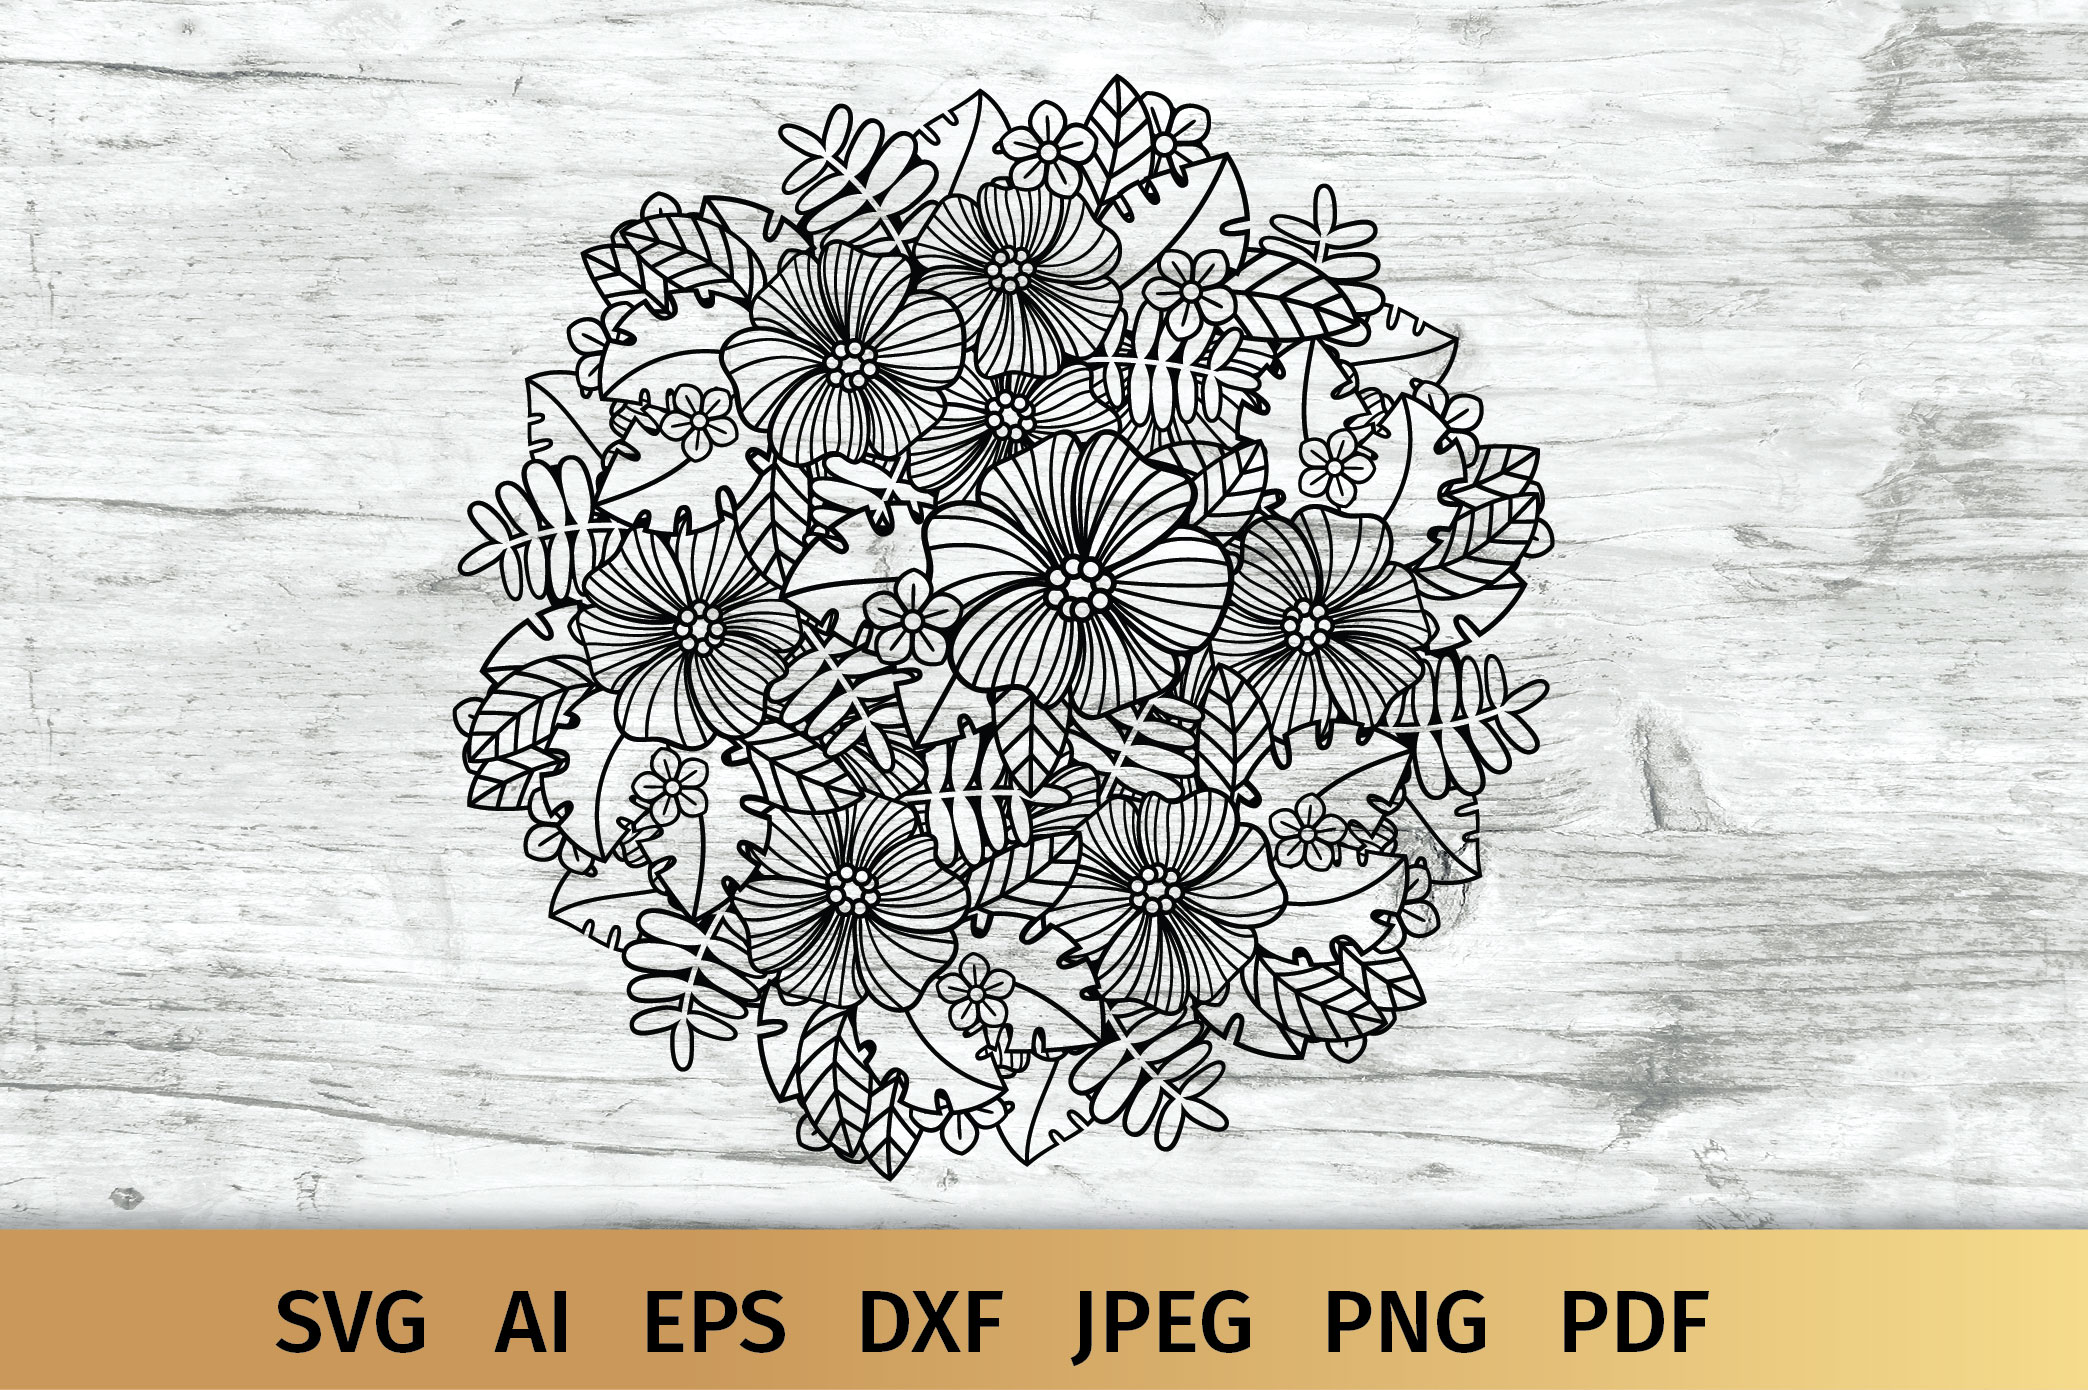 Download Free Floral Mandala Graphic By Elinorka Creative Fabrica for Cricut Explore, Silhouette and other cutting machines.